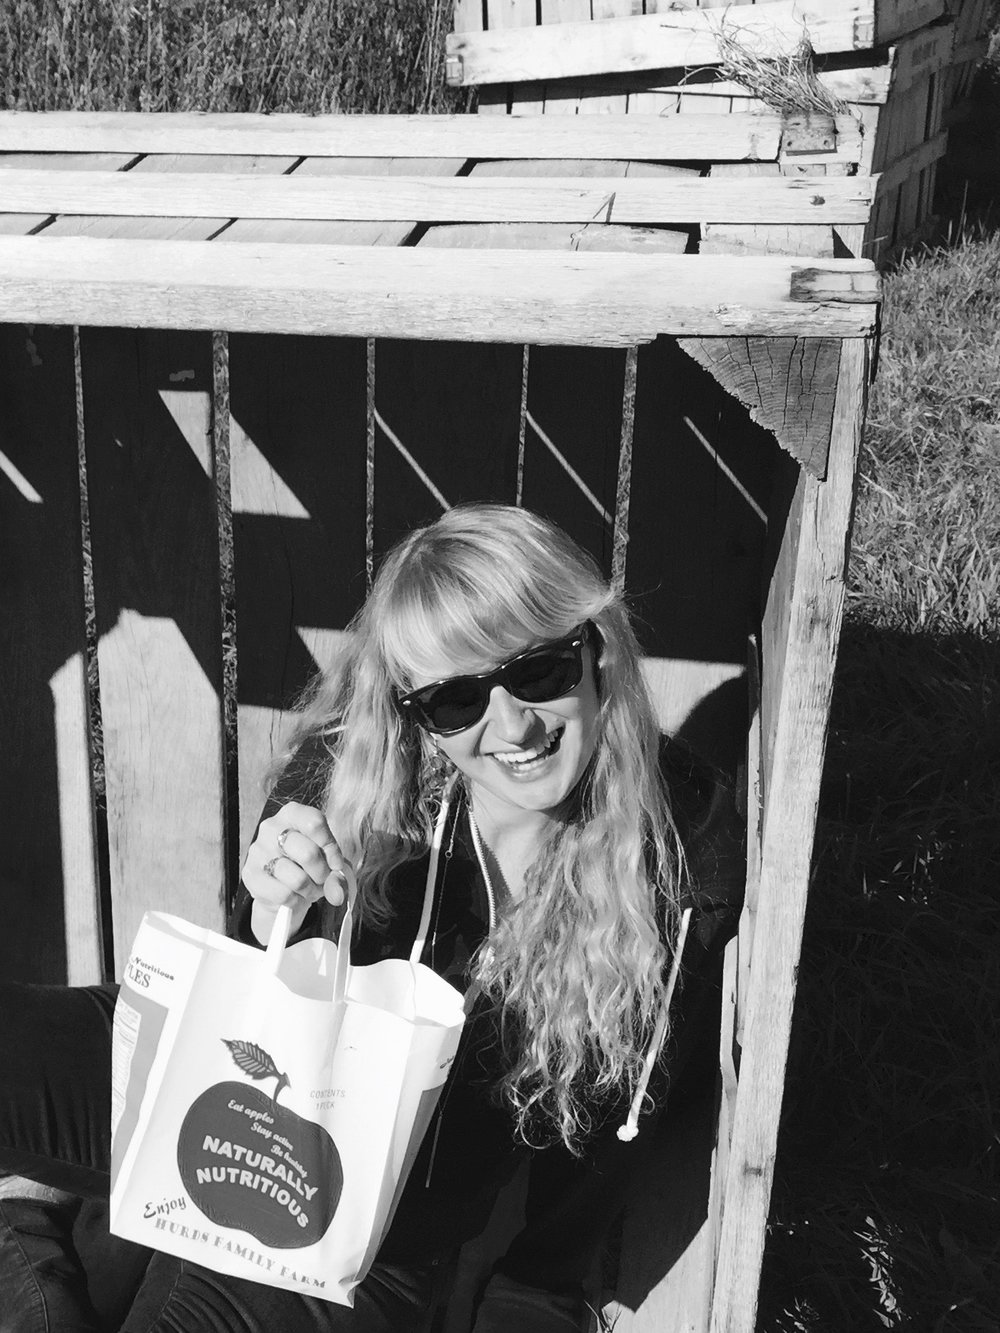 Just casually hanging out in this apple crate, enjoying  these naturally delicious apples and upstate vibes.